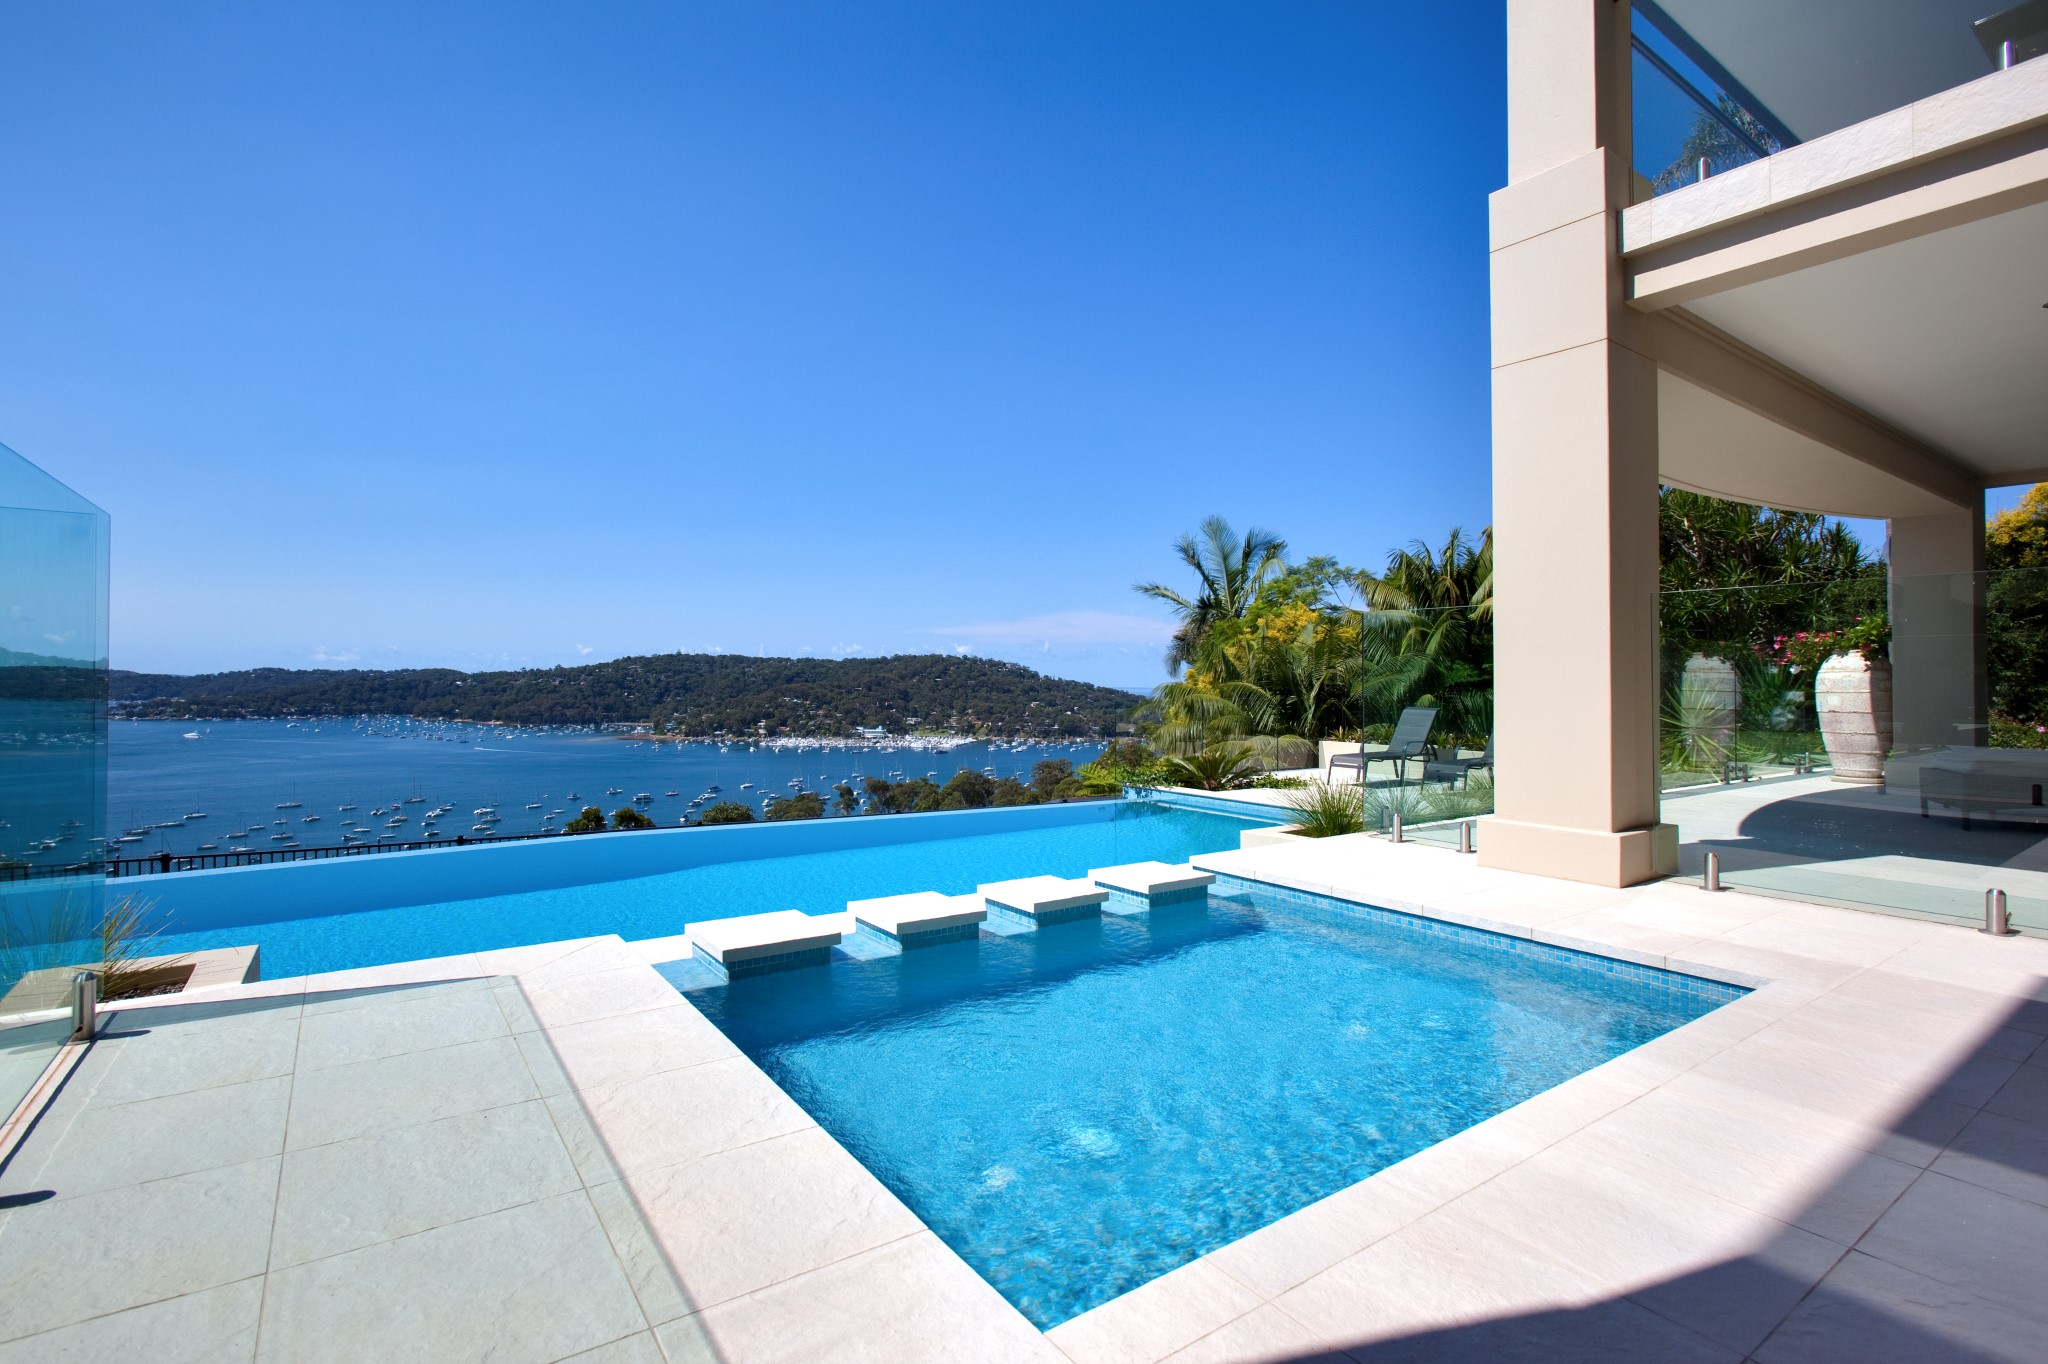 Beautiful blue fresh infinity swimming pool with an amazing sea view in Bayview